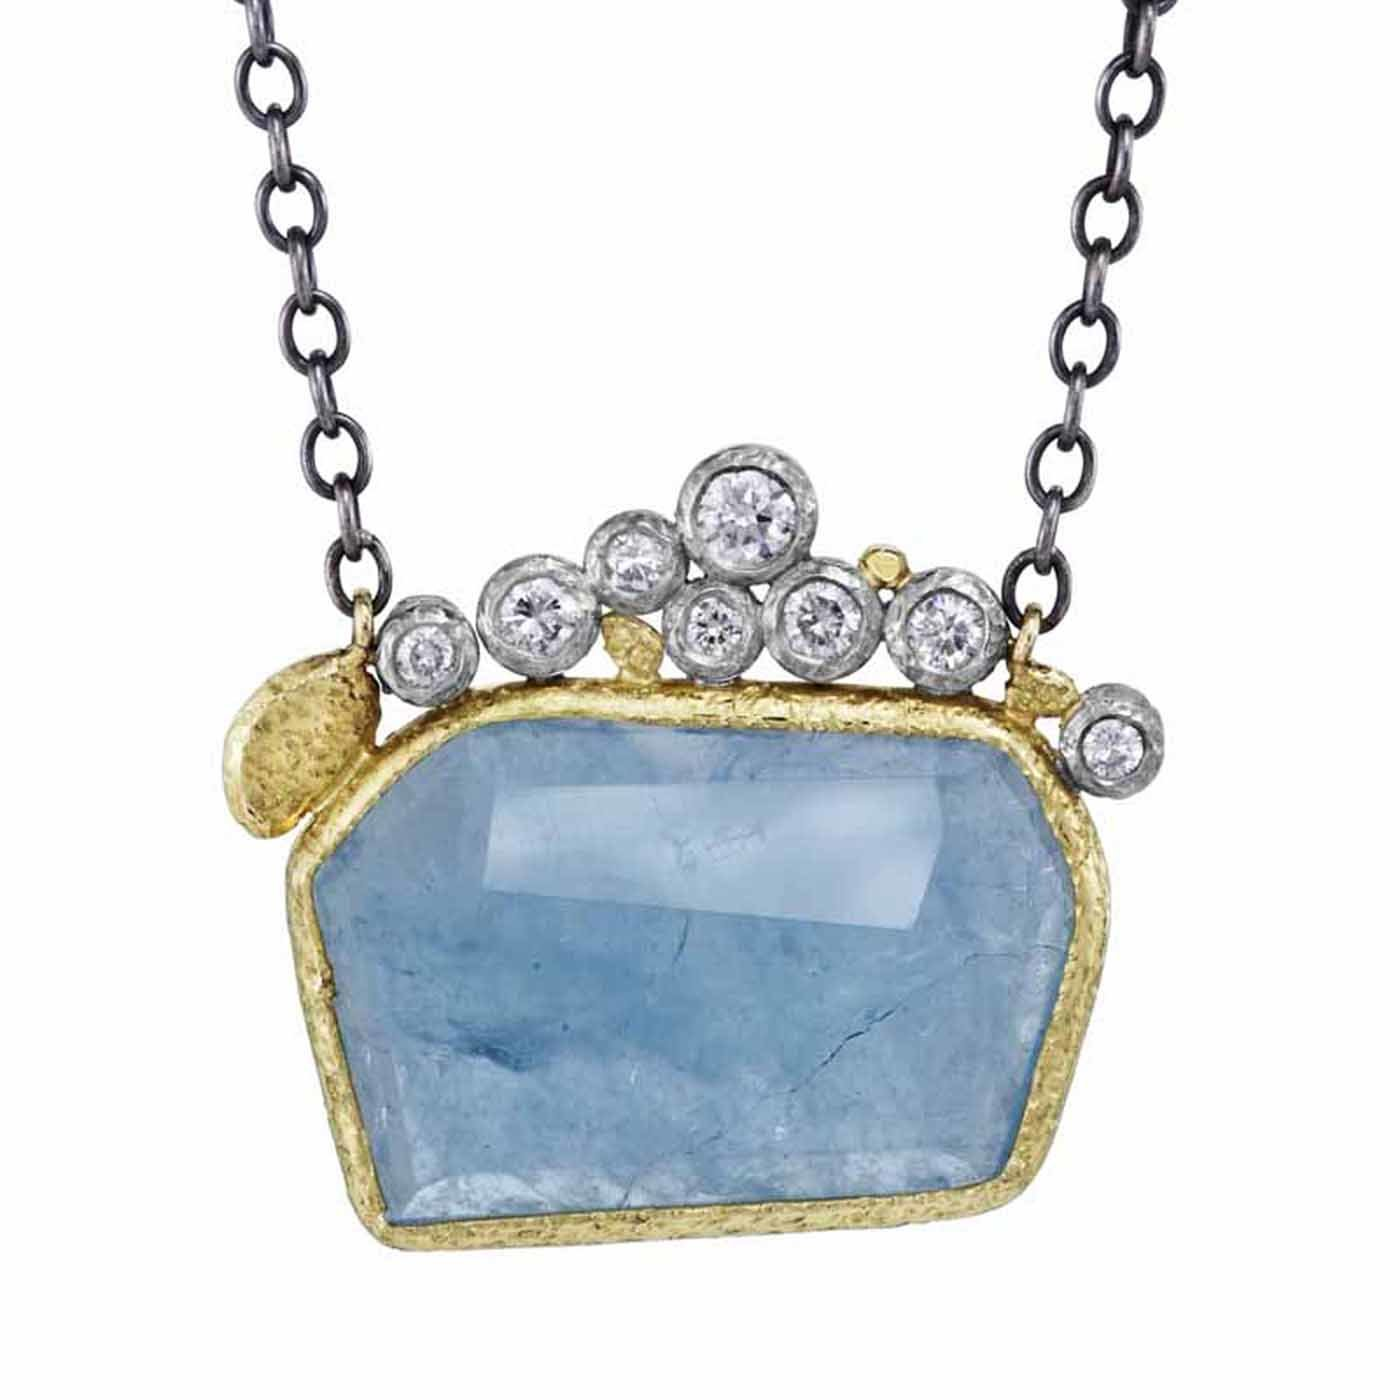 hanging chair rona sciatic nerve cushion geometric aquamarine pendant by fisher gold silver